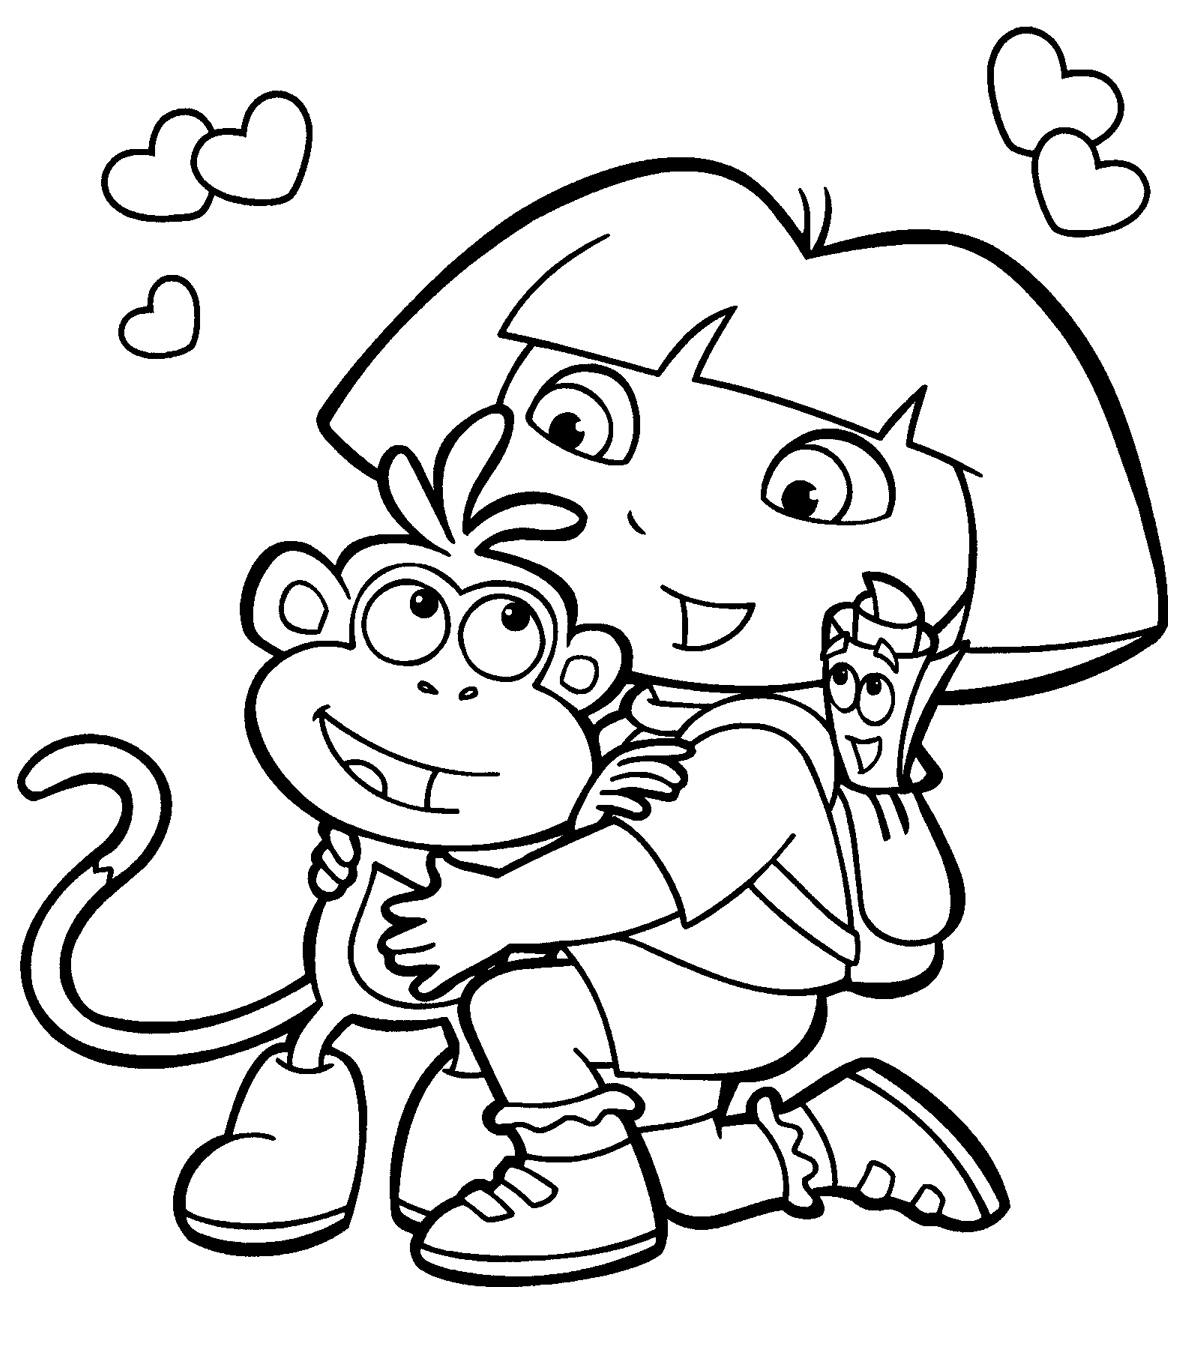 dora the explorer coloring pages printable free printable dora the explorer coloring pages for kids